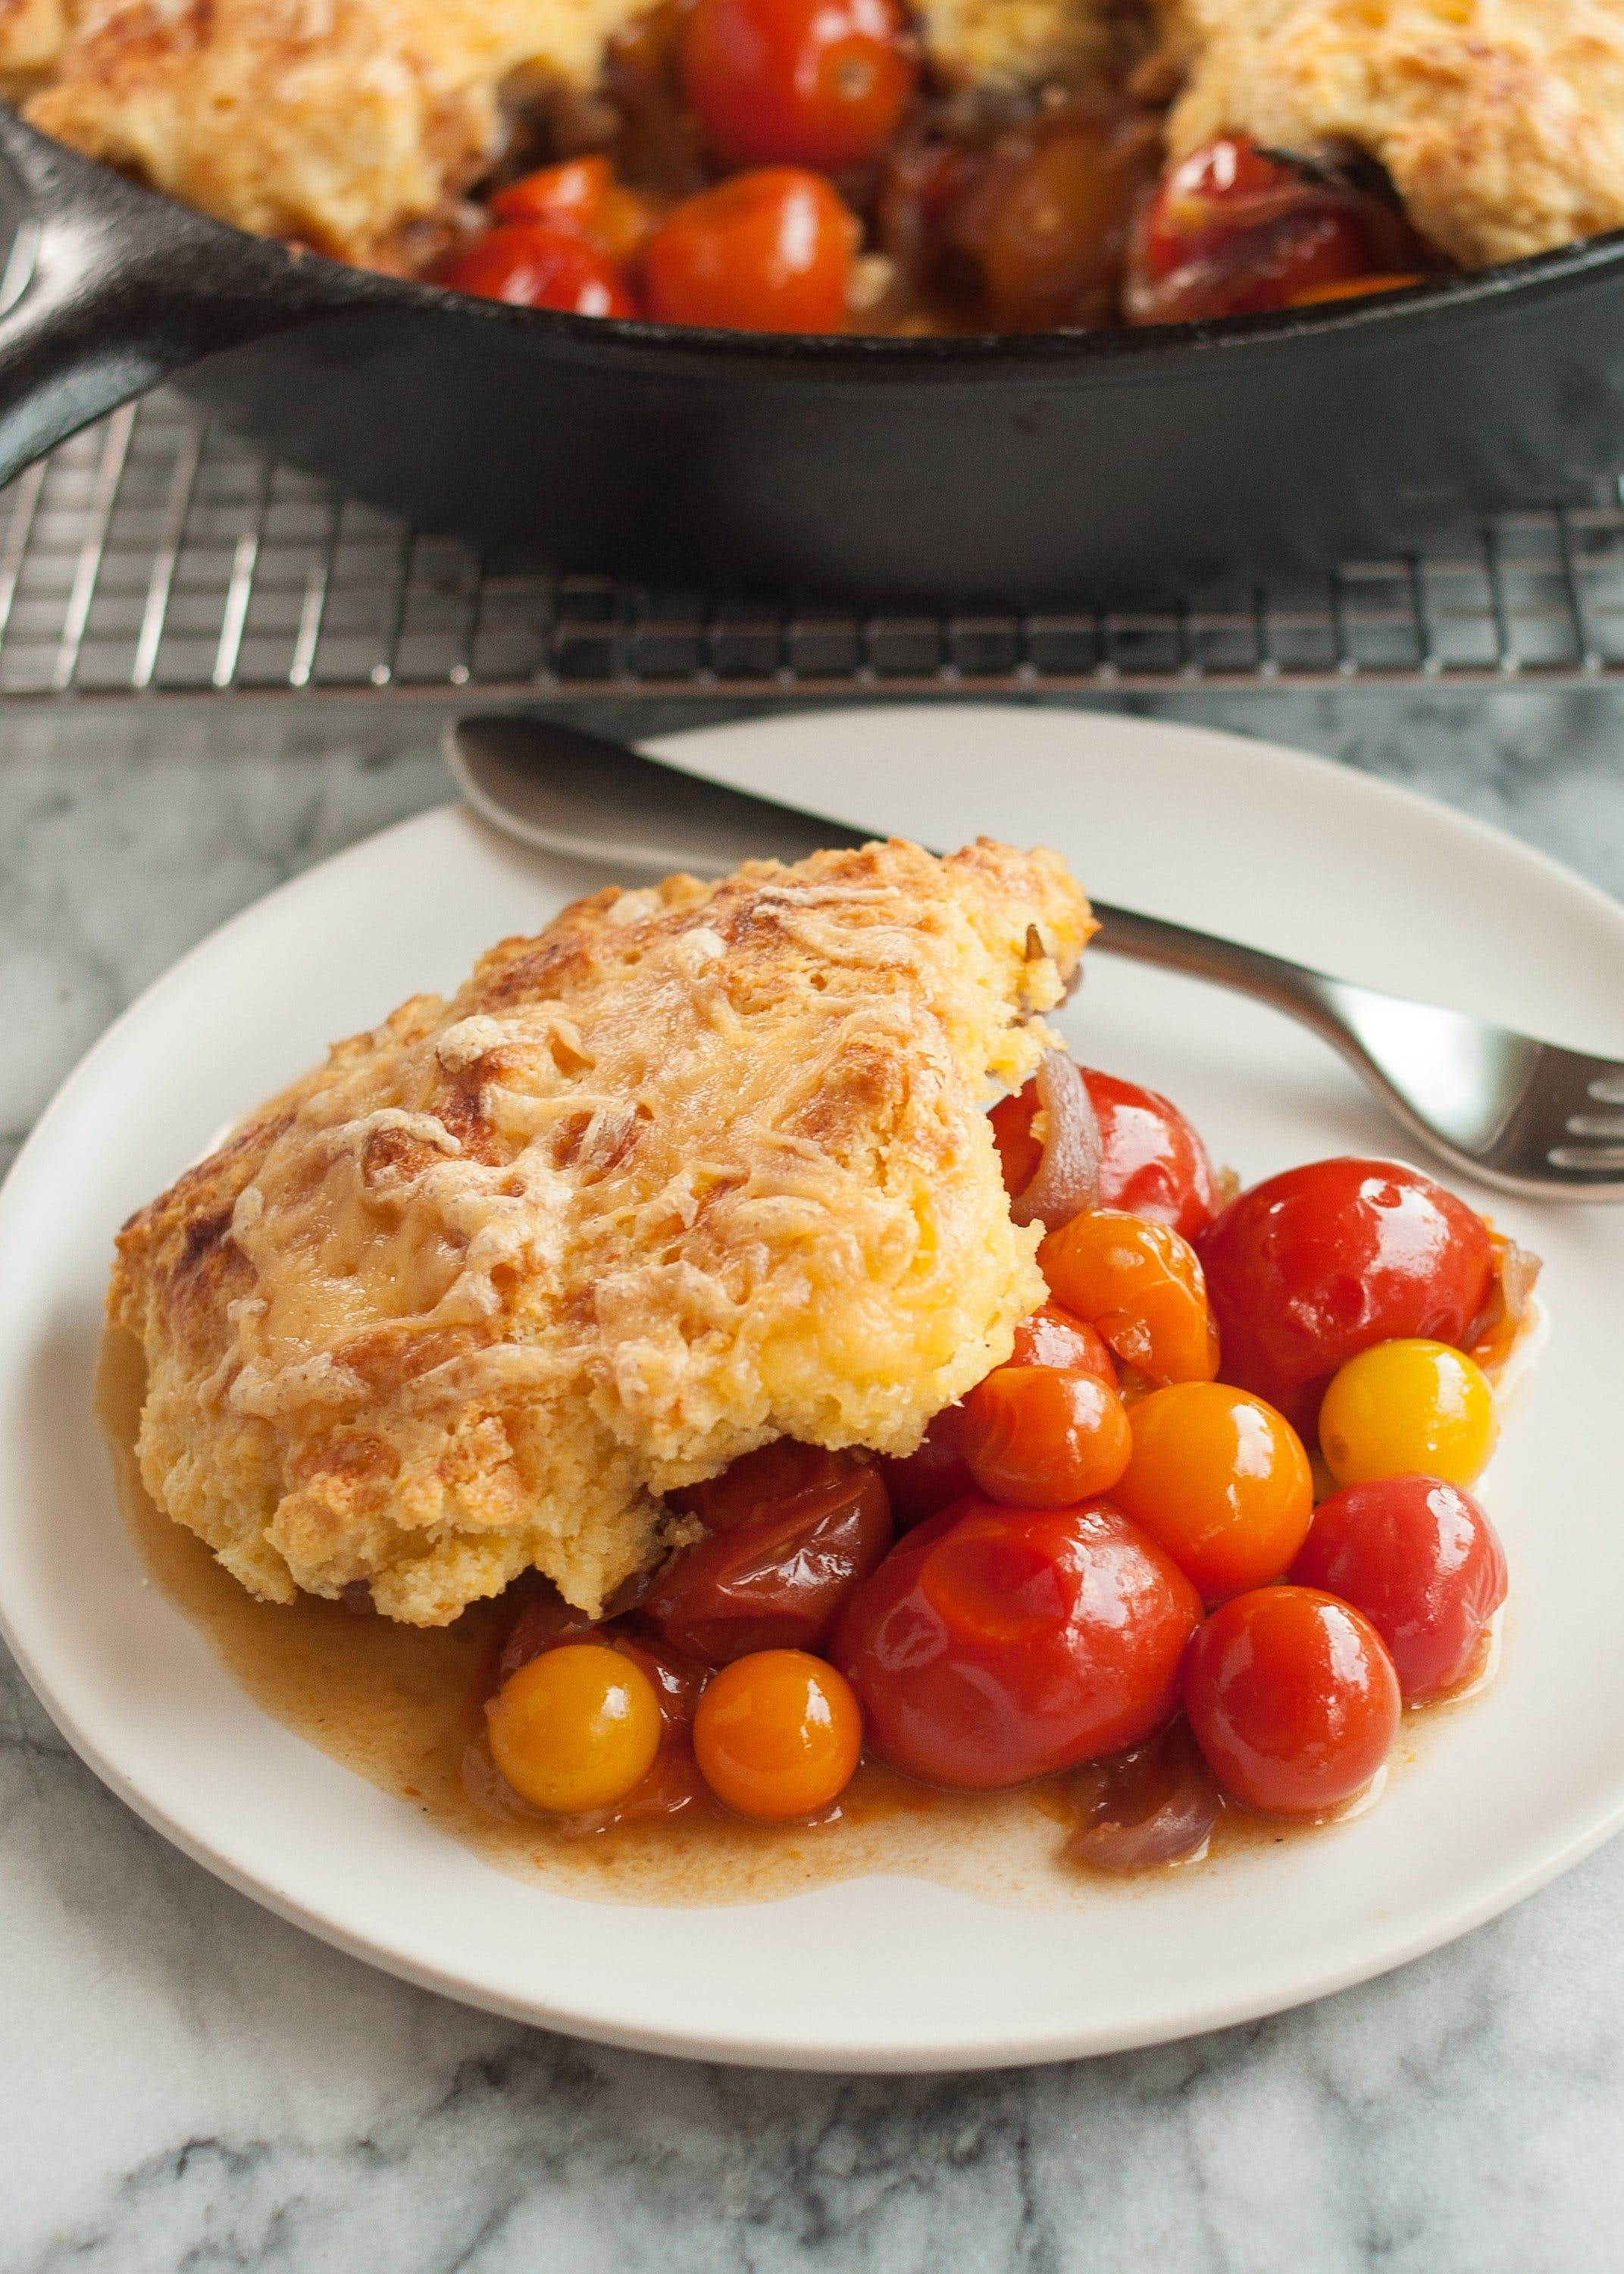 Cornmeal And Polenta Aren T The Same Thing Here S What You Need To Know Recipes Food Tomato Side Dishes